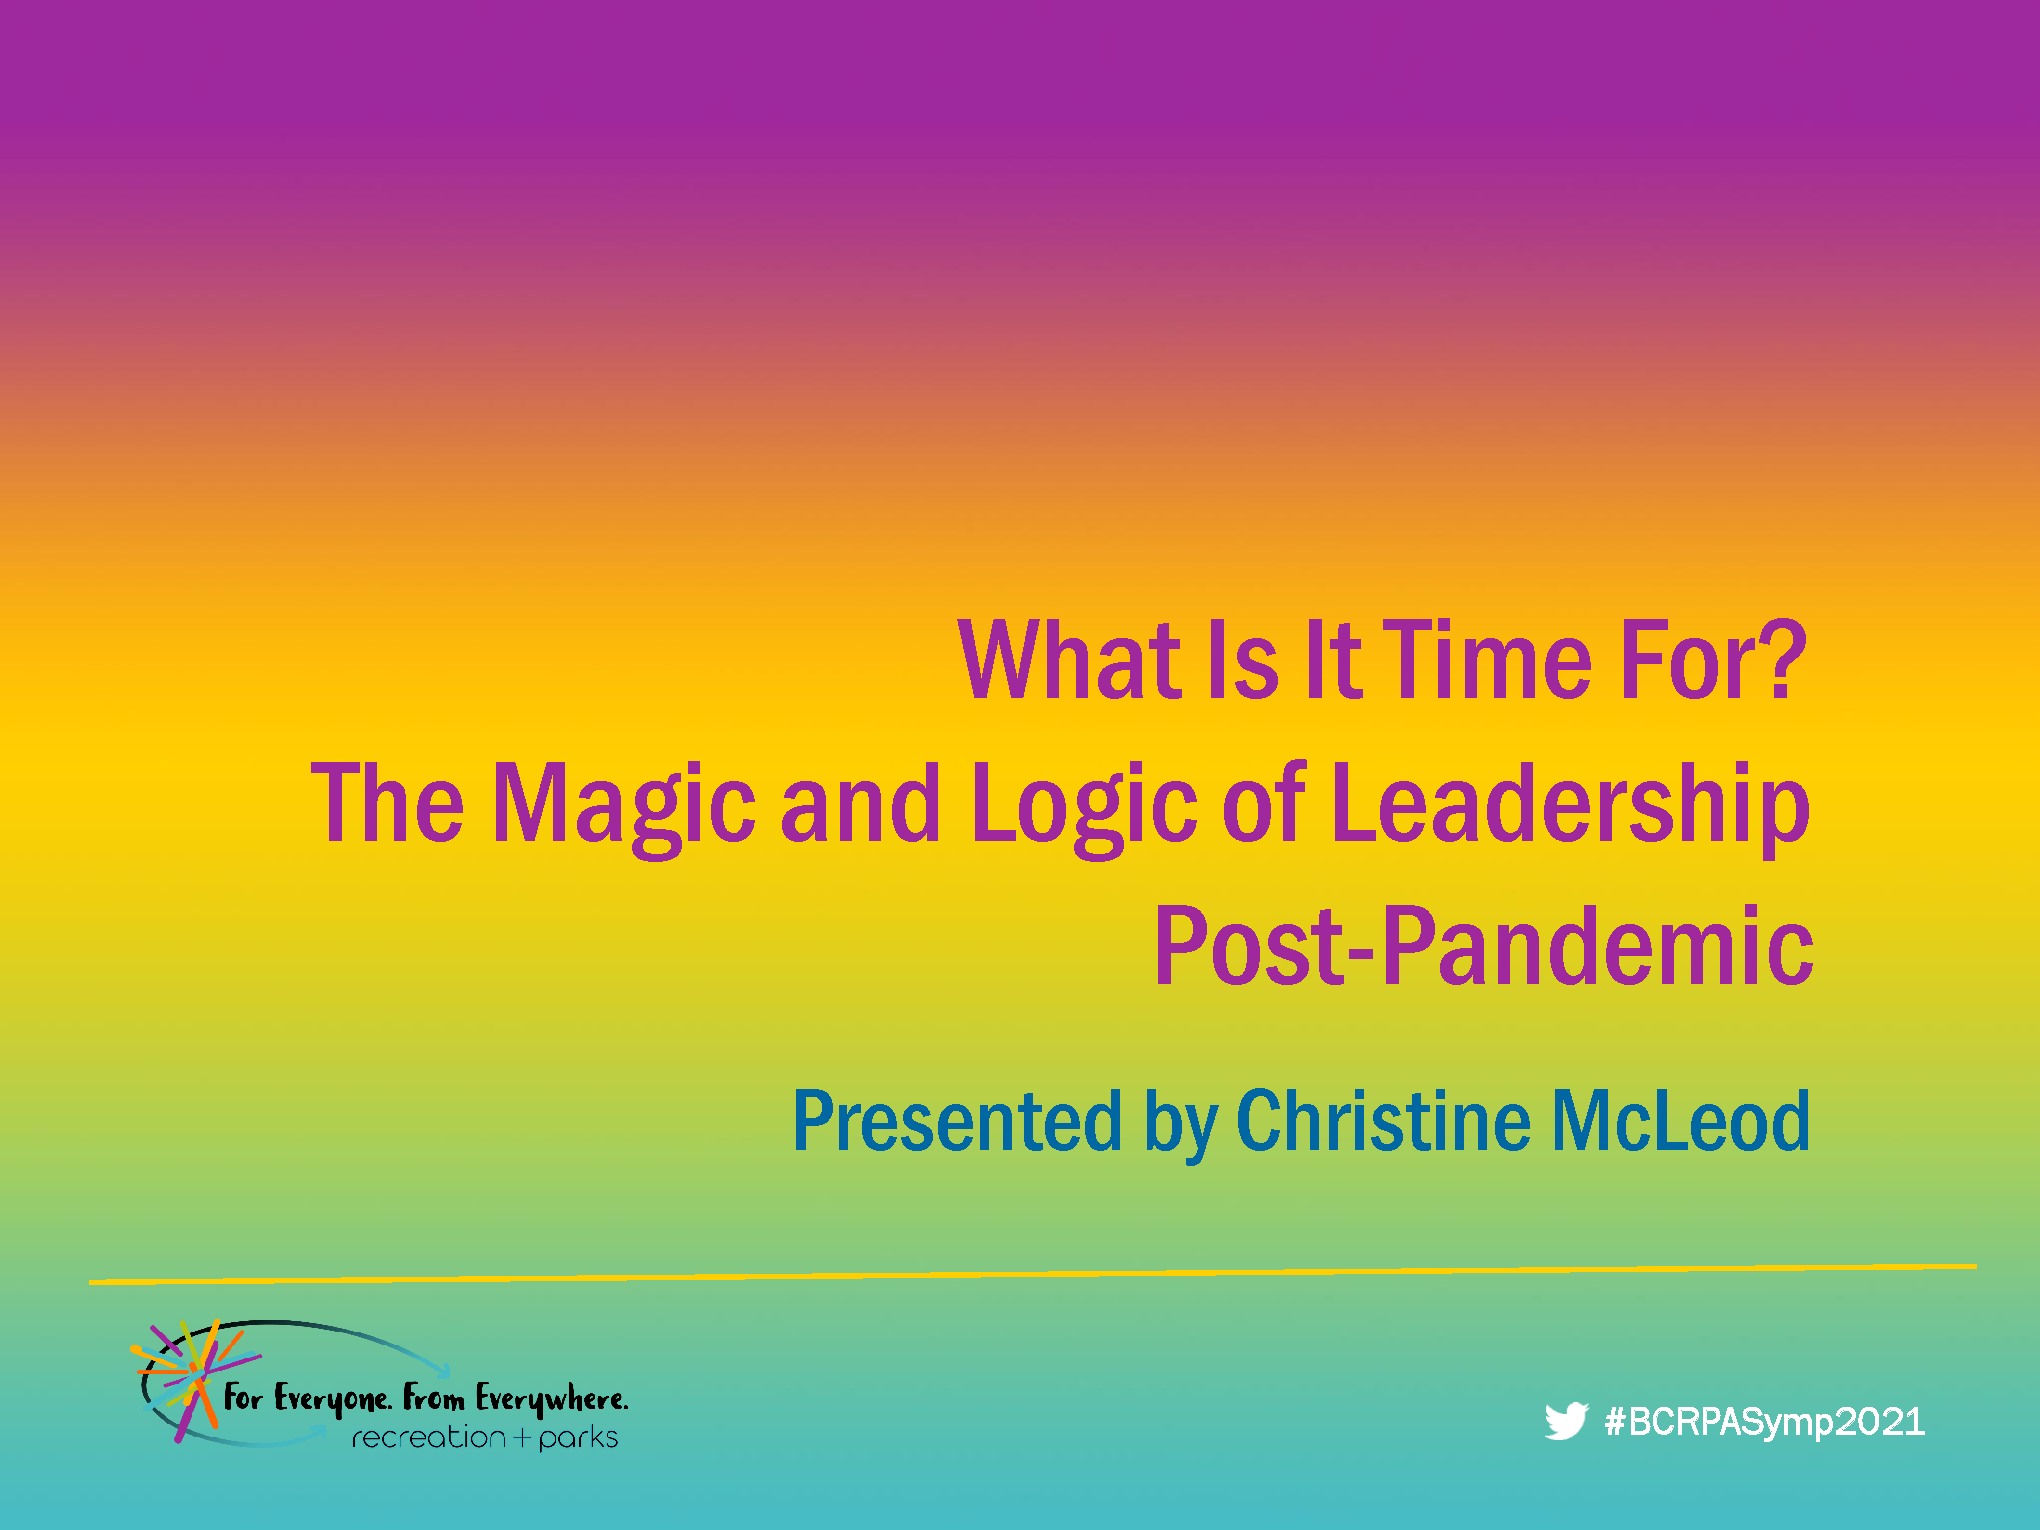 What Is It Time For? The Magic and Logic of Leadership Post-Pandemic